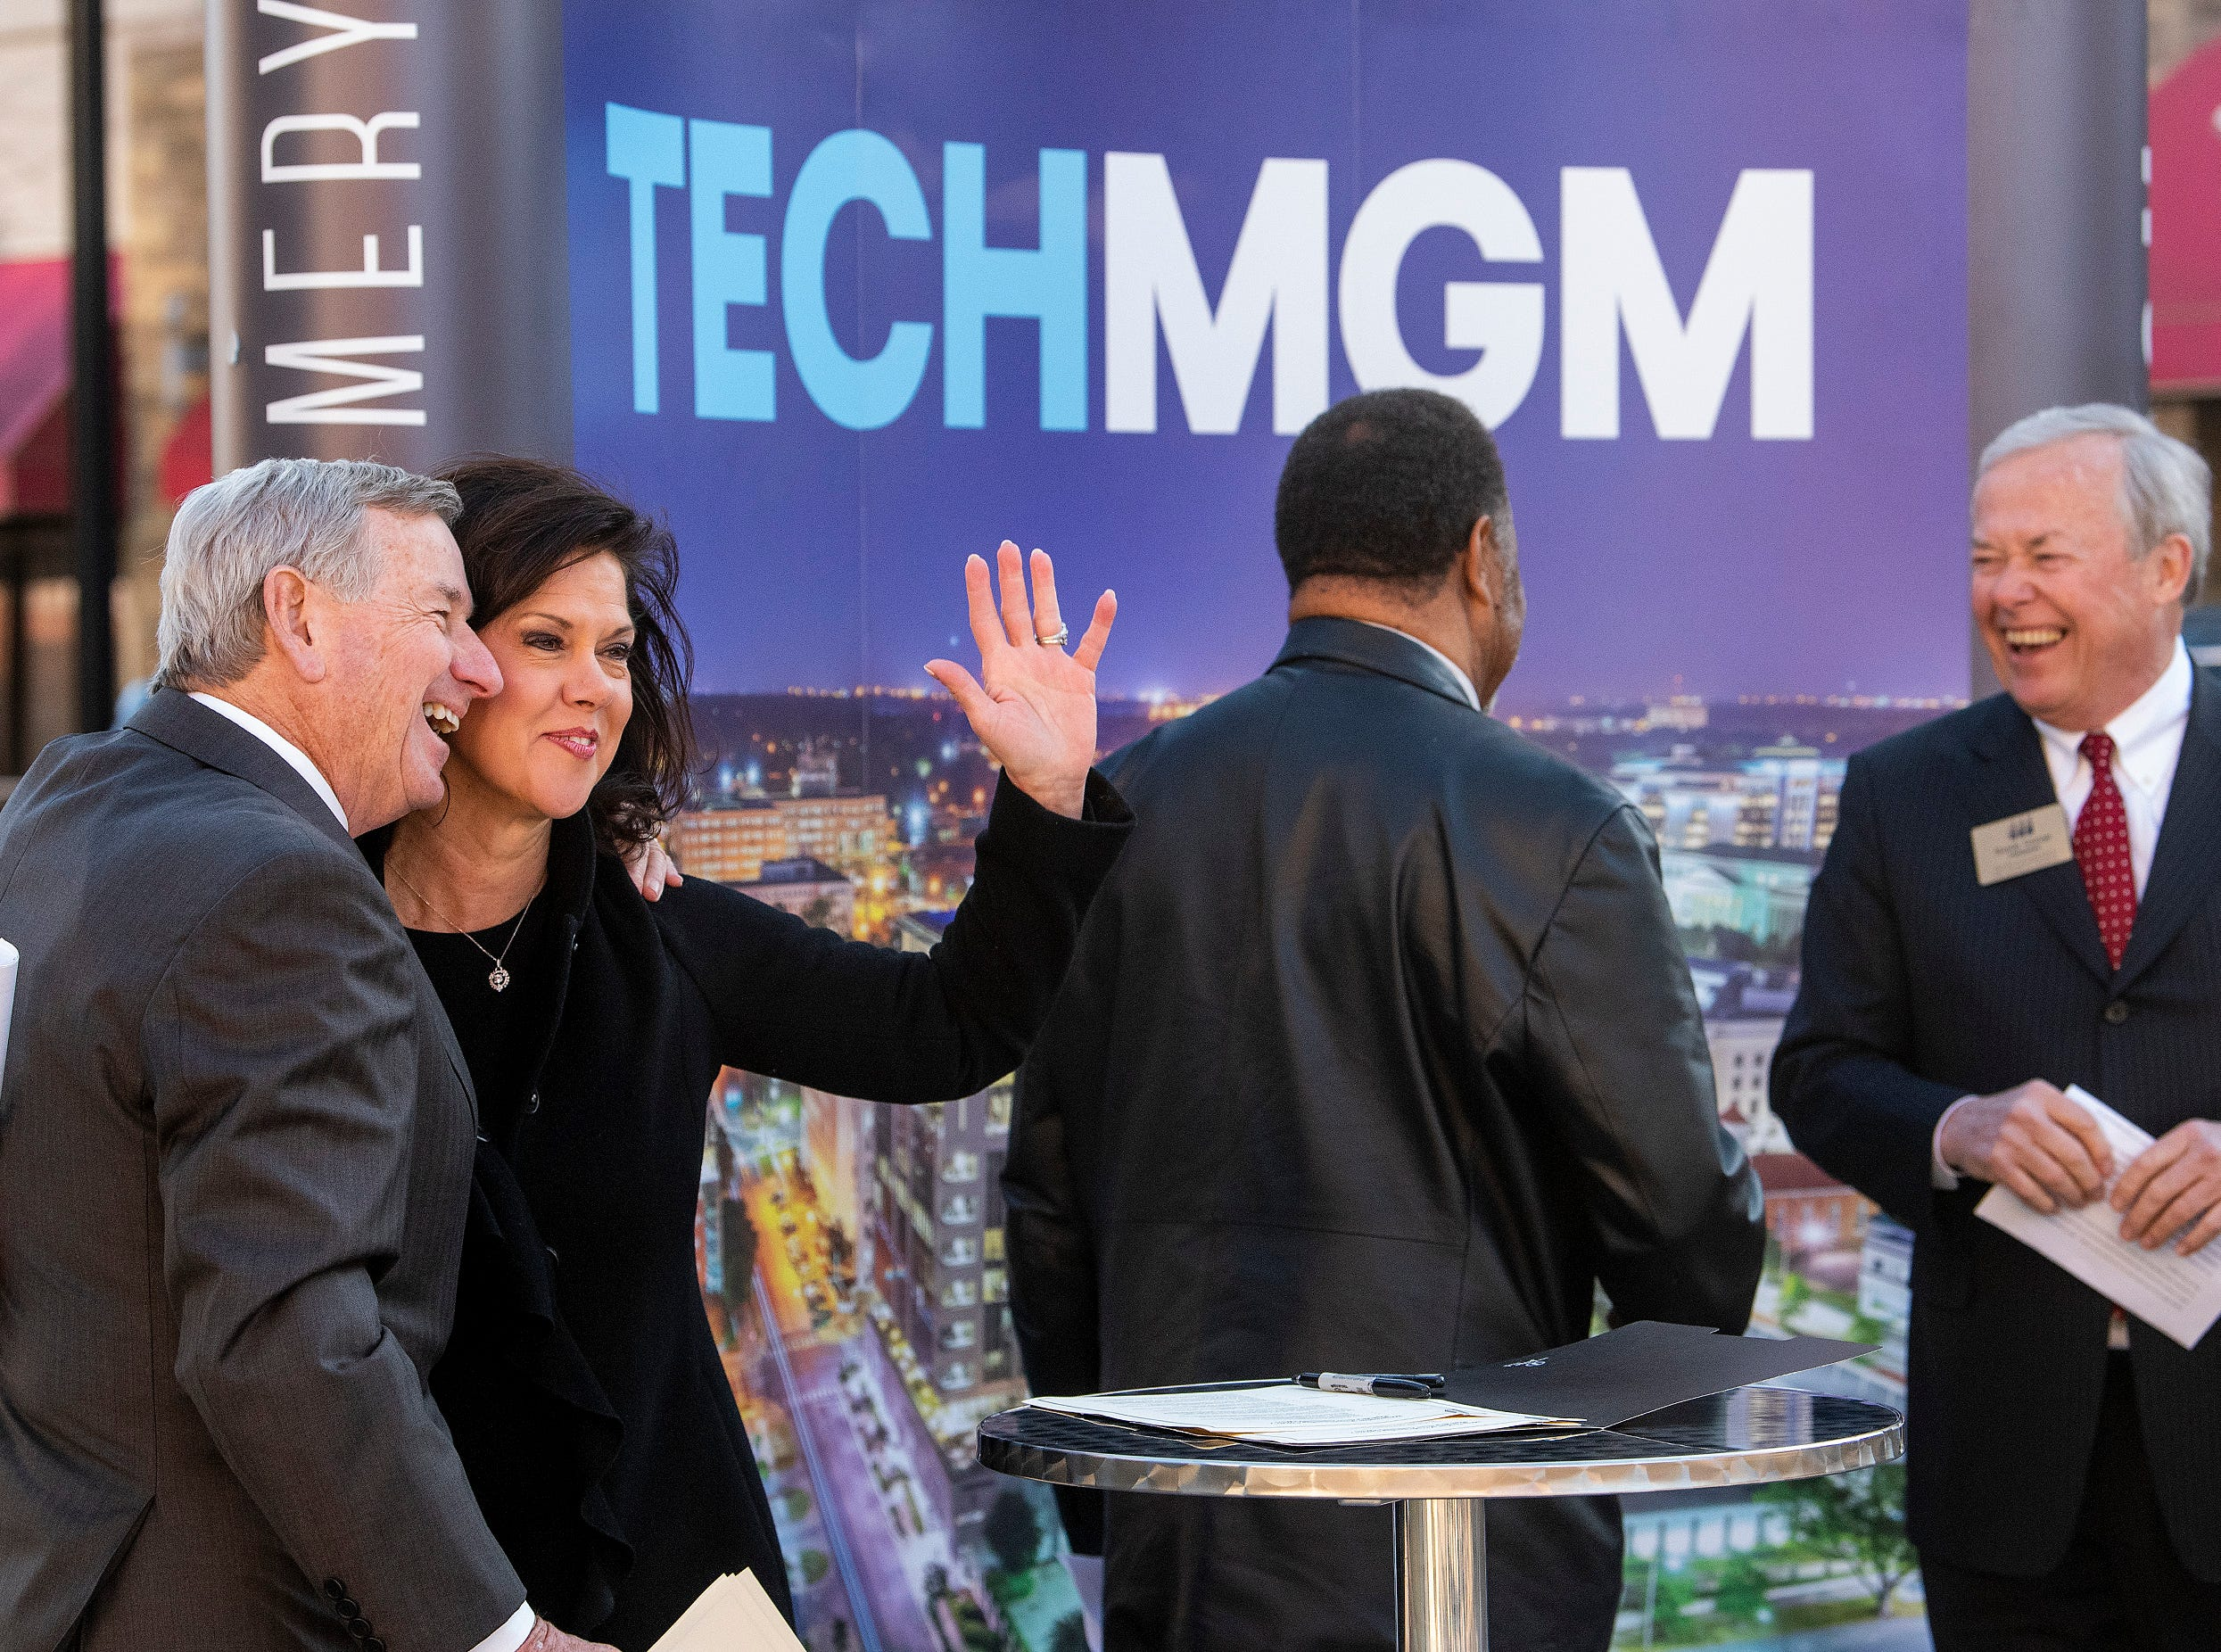 Montgomery Mayor Todd Strange, from left, Leslie Sanders of Alabama Power, Montgomery County Commission Chairman Elton Dean, left, Randy George of the Chamber of Commerce sign a pact as they announce free 1GB WiFi and other tech improvements along the Commerce Street / Dexter Avenue corridor in downtown Montgomery, Ala., on Wednesday January 16, 2019.